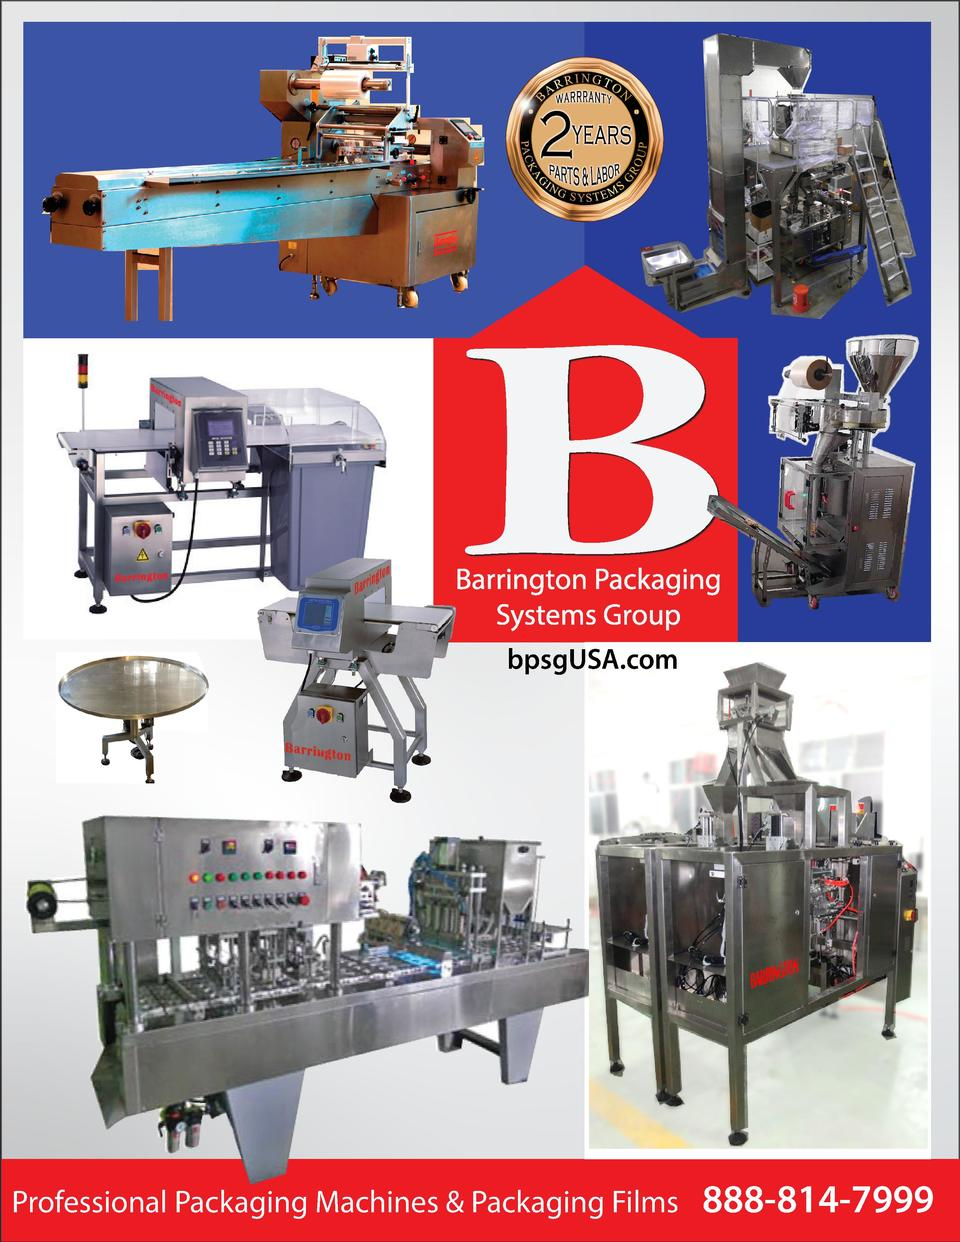 bpsgUSA.com  Professional Packaging Machines   Packaging Films  888-814-7999